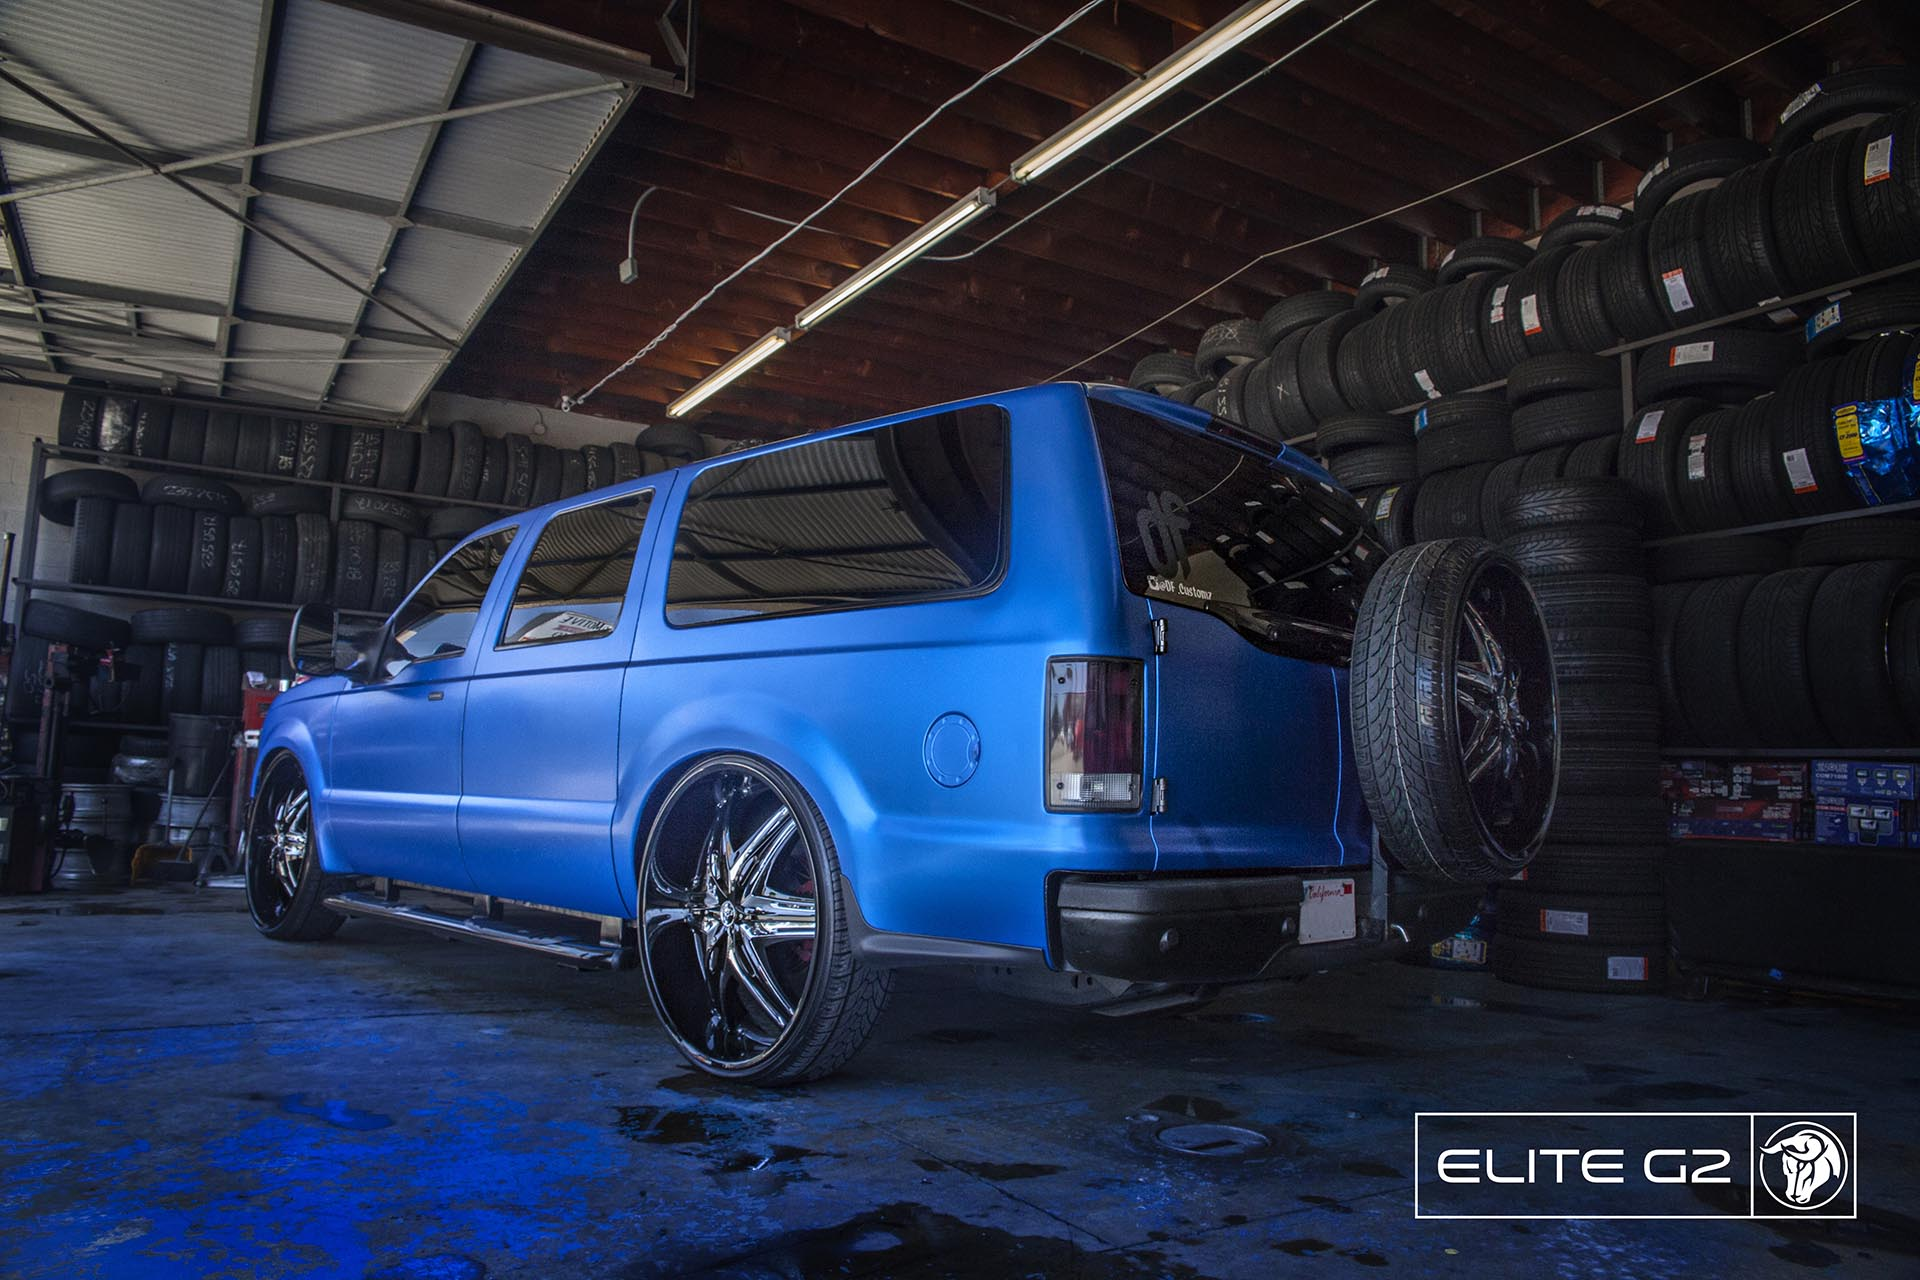 Black Diablo Elite G2 Wheels on a Ford Excursion